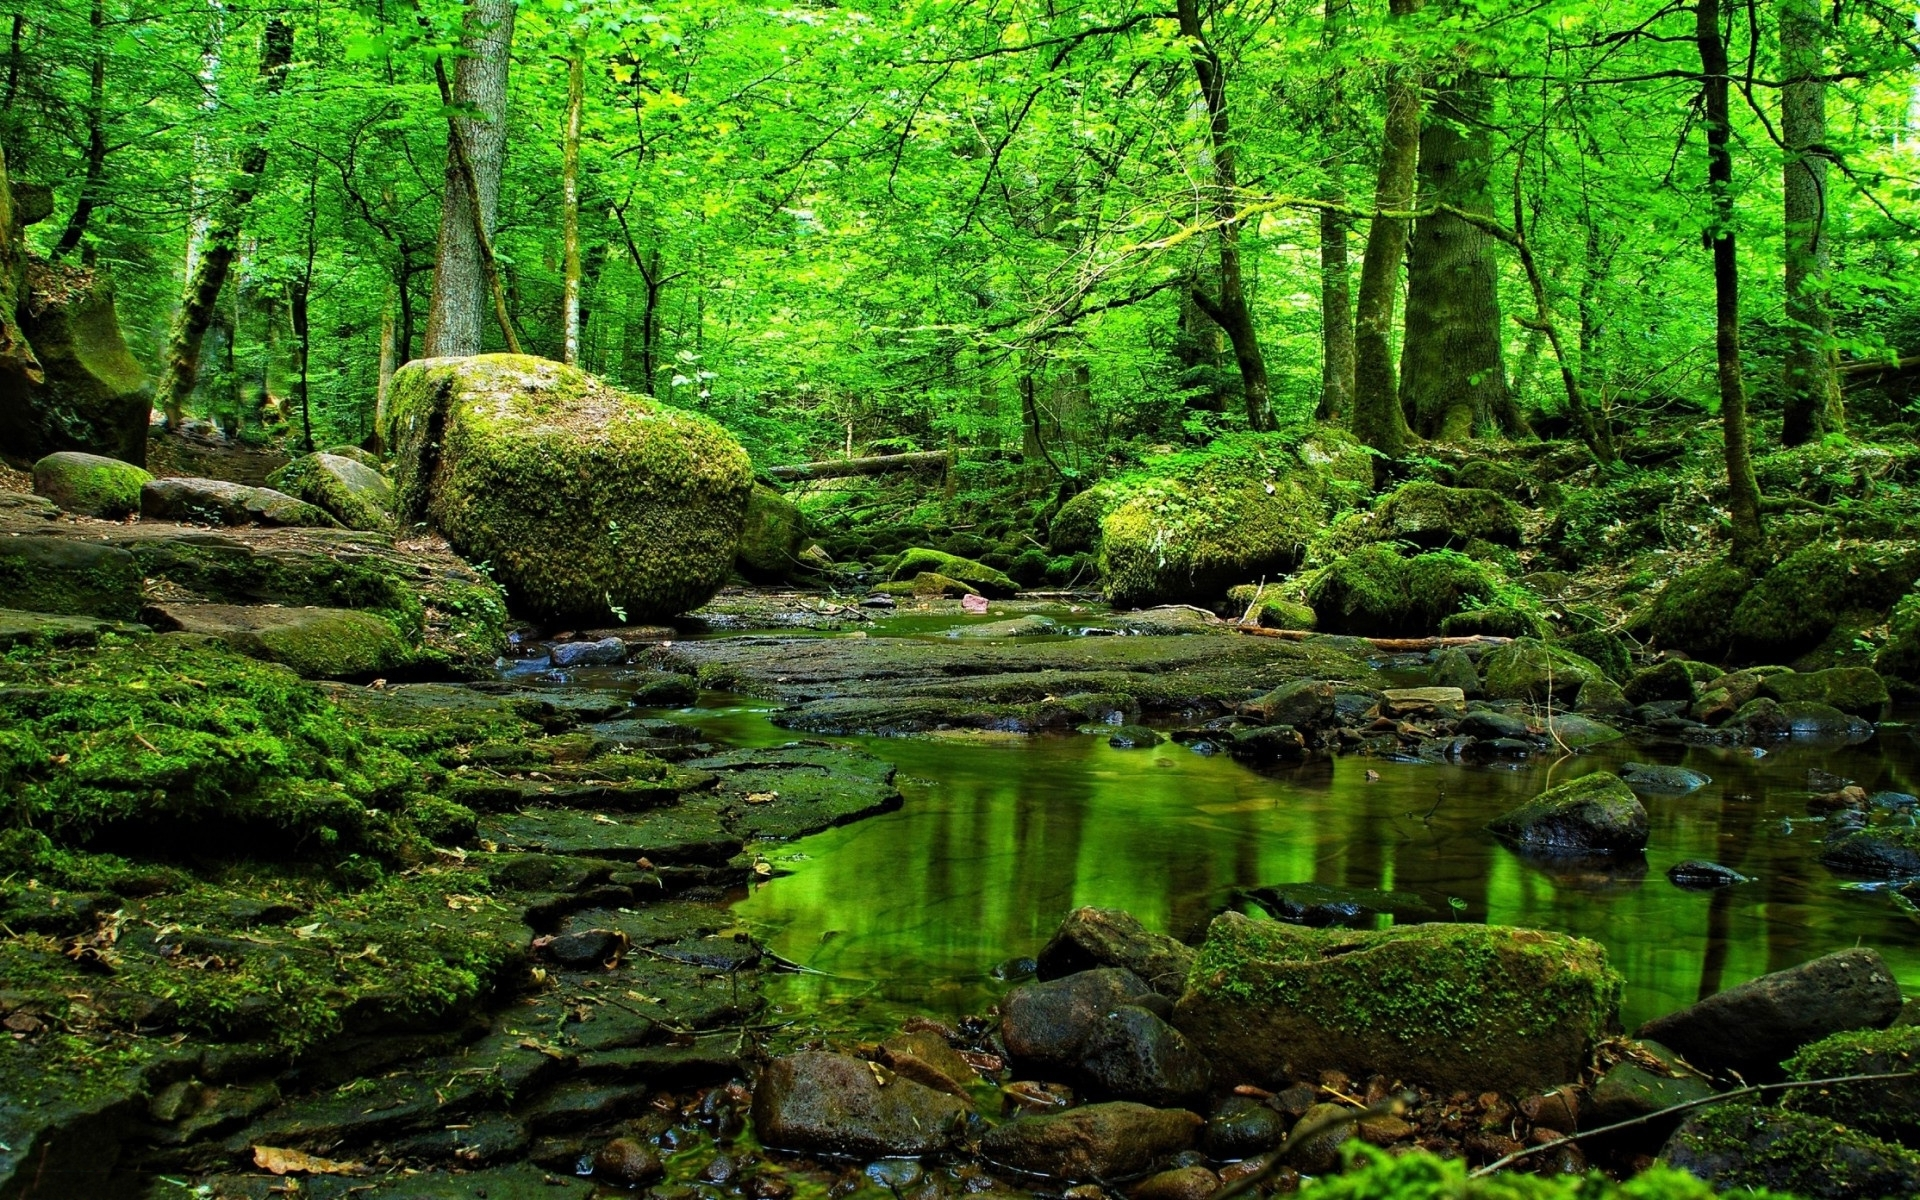 green forest wallpapere rocks iarba green forest apa rocks iarba green forest